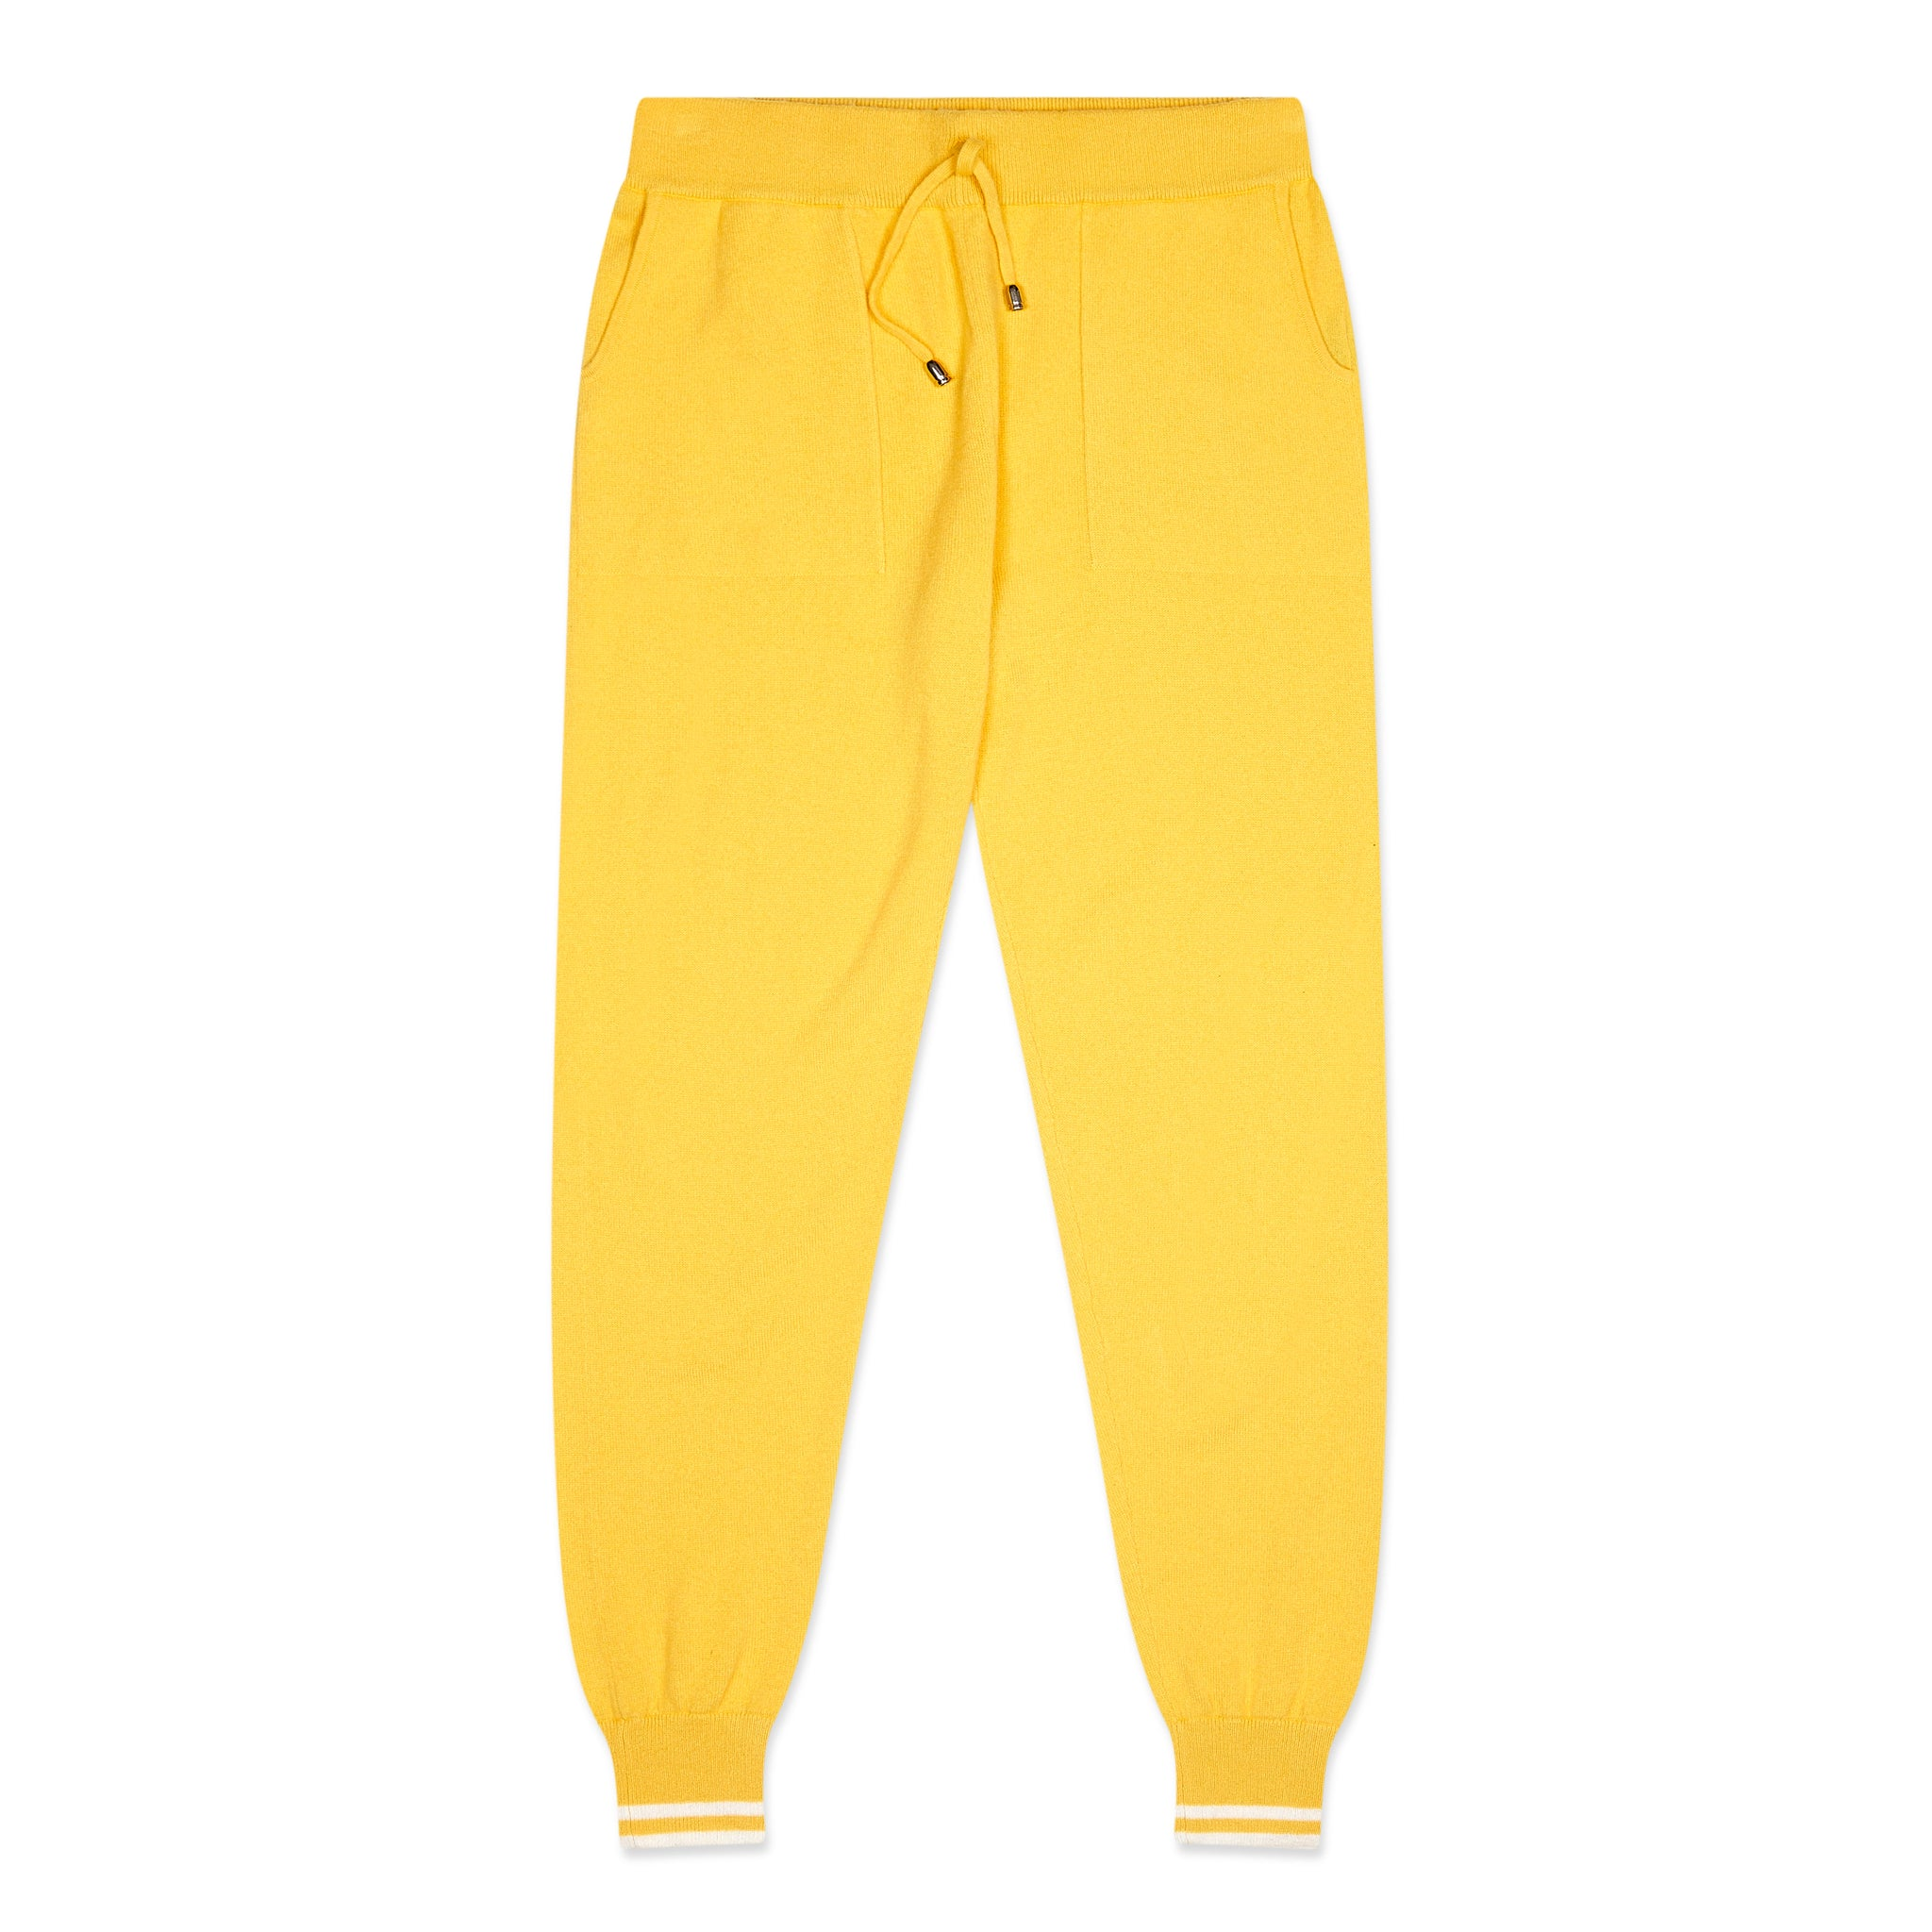 Yellow Cashmere Pants